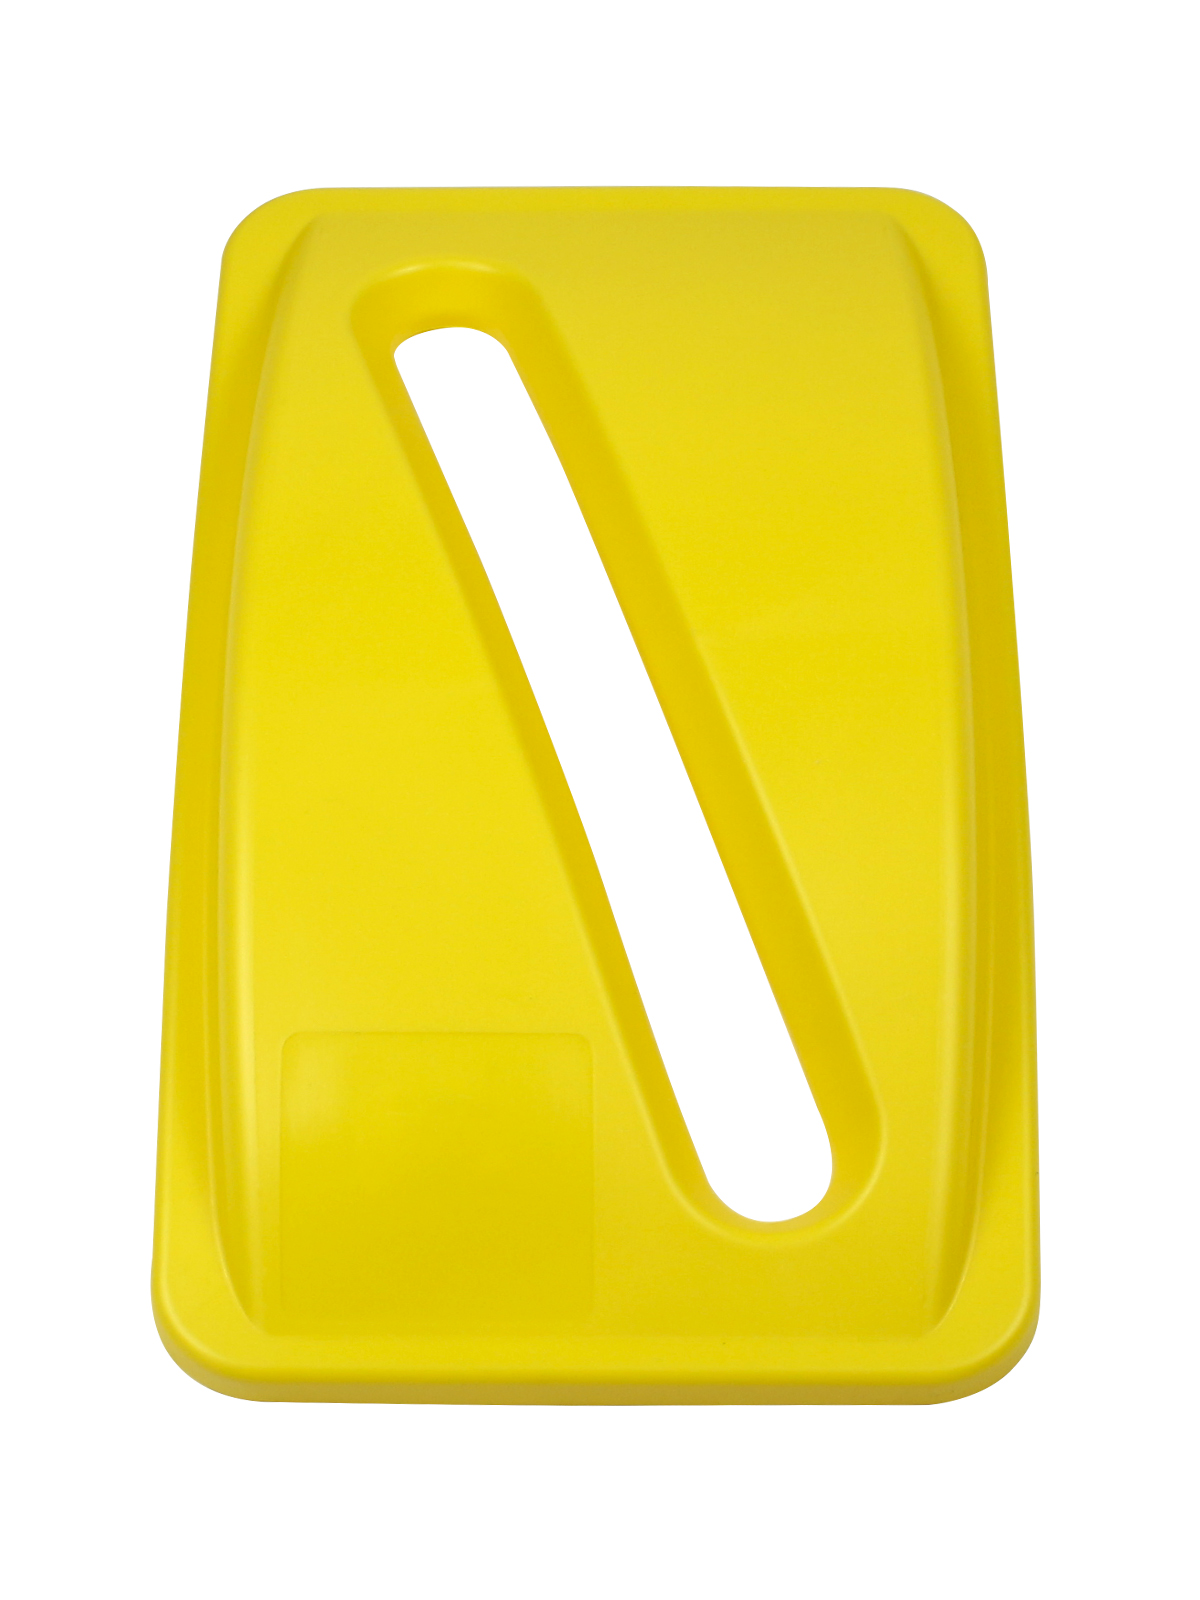 WASTE WATCHER - Lid - Slot - Yellow